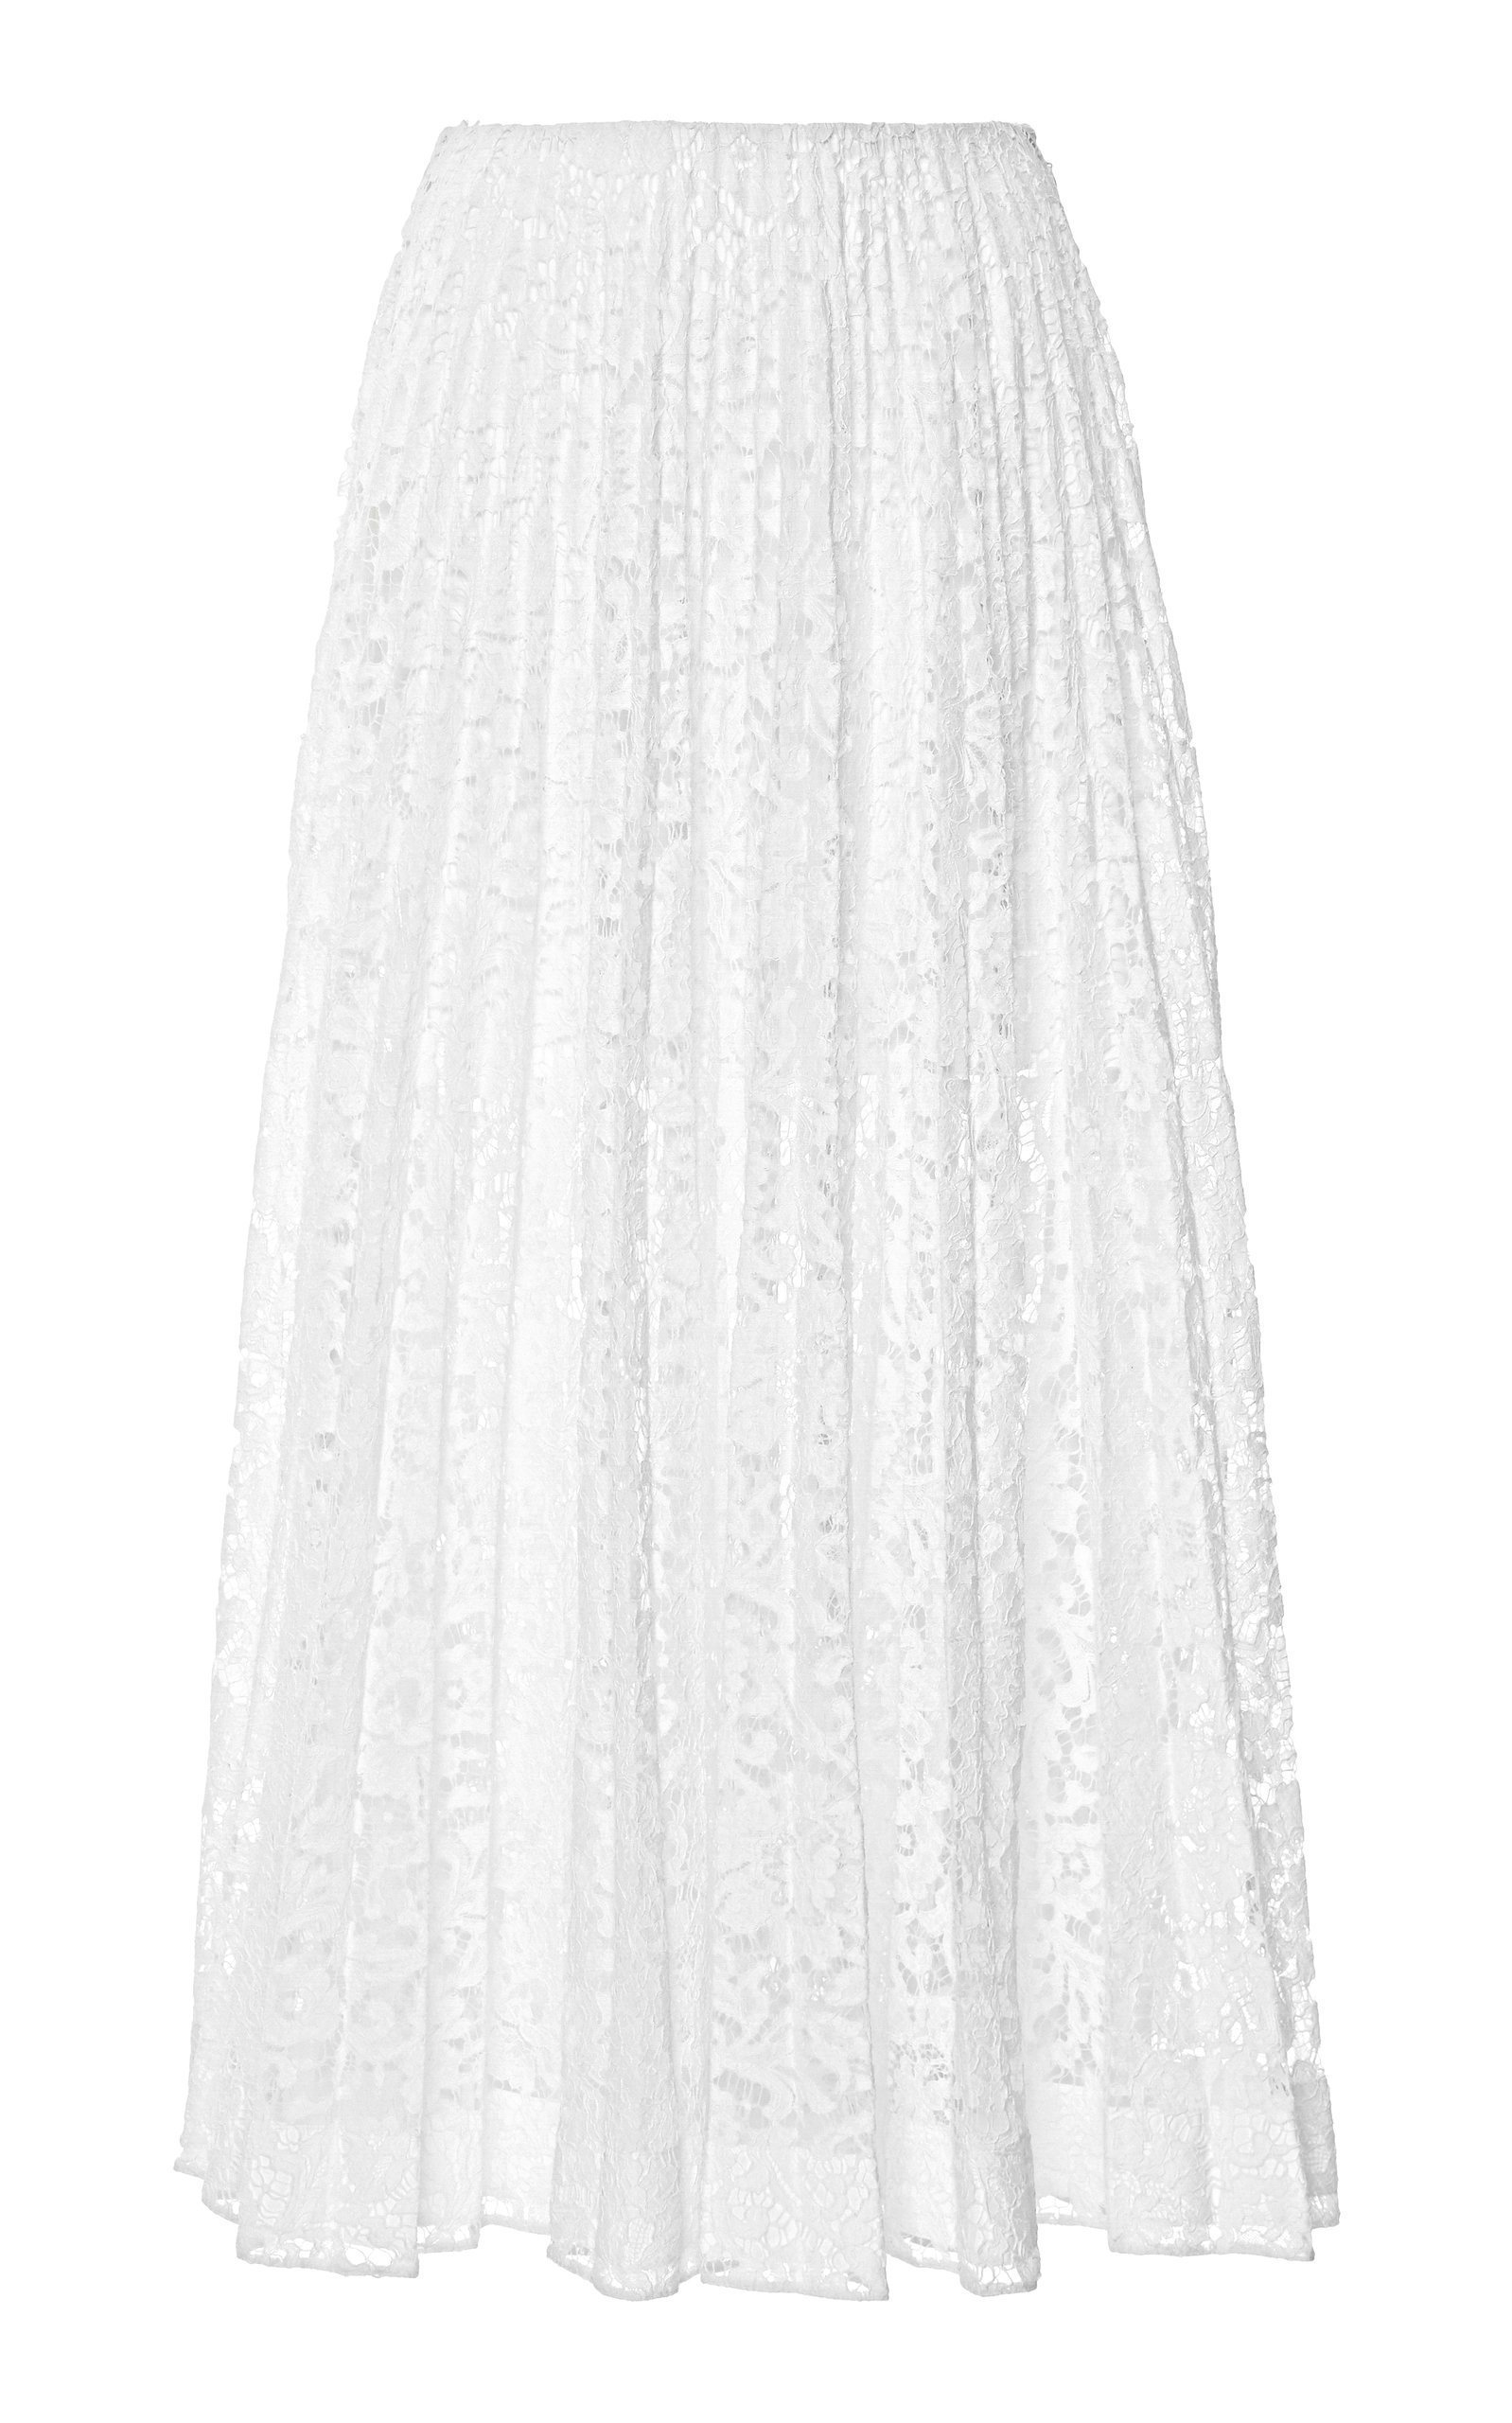 Valentino Sheer Pleated Lace Maxi Skirt Size: 38